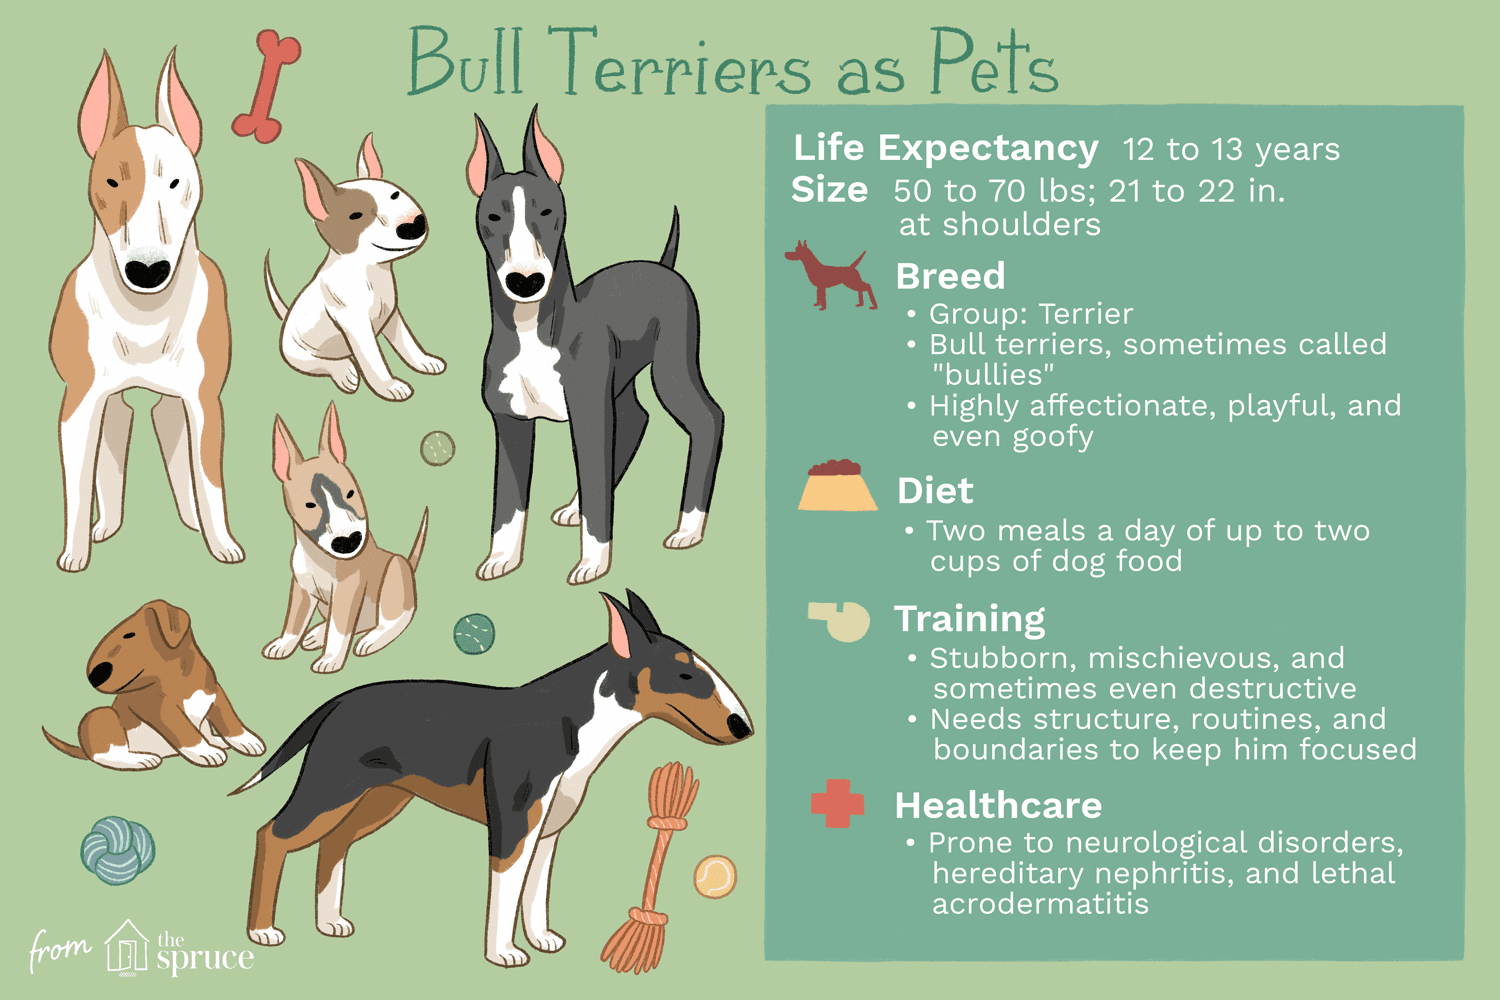 bull terriers as pets illustration